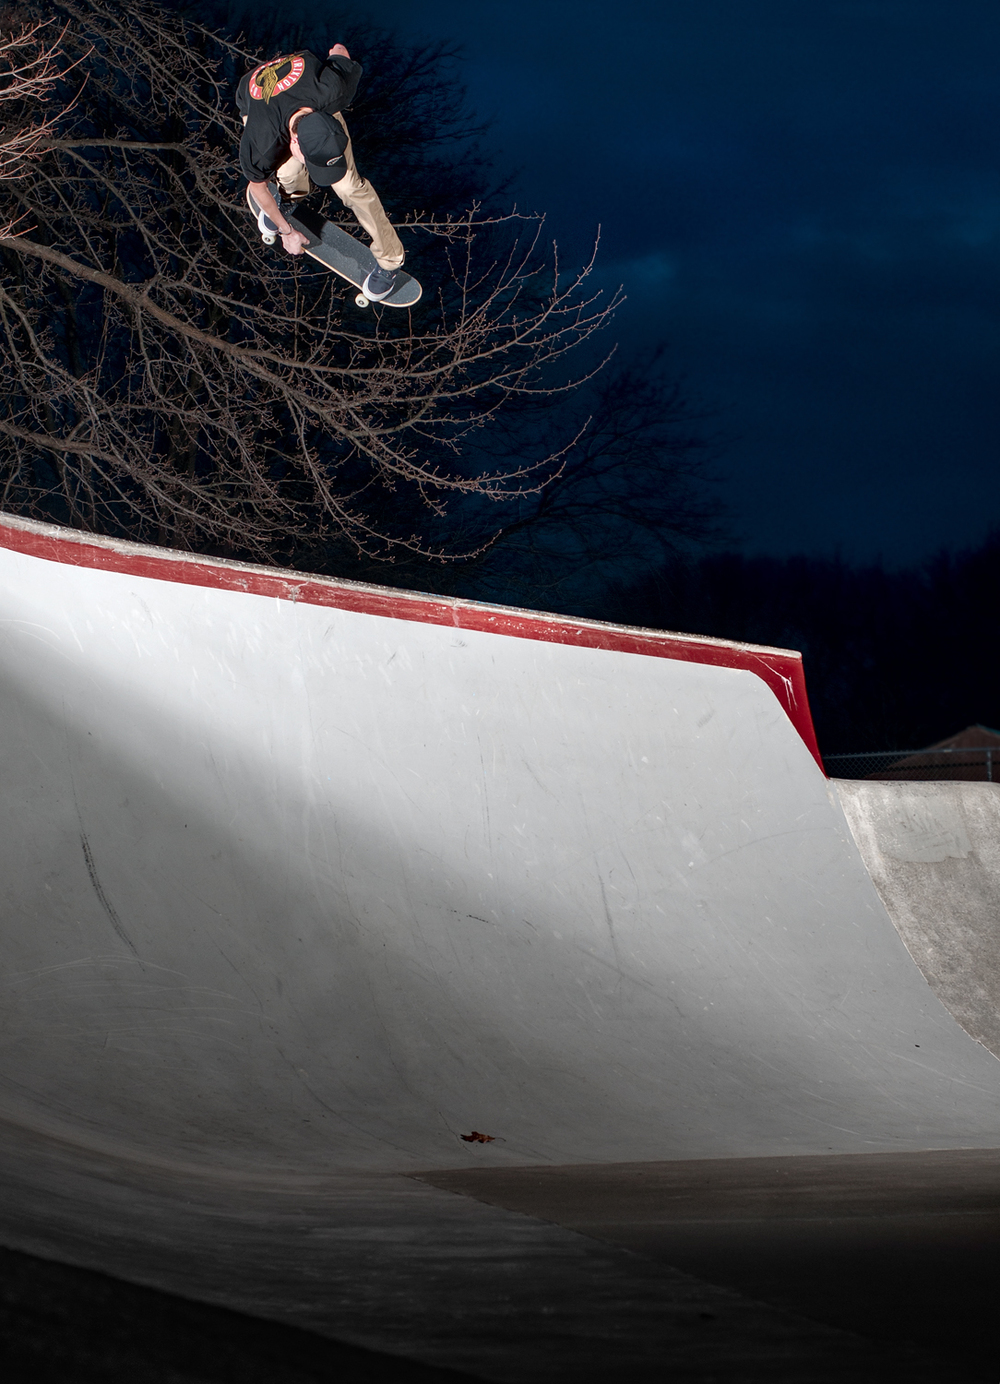 Sam Lind, Backside Indy, Groton, CT 2012